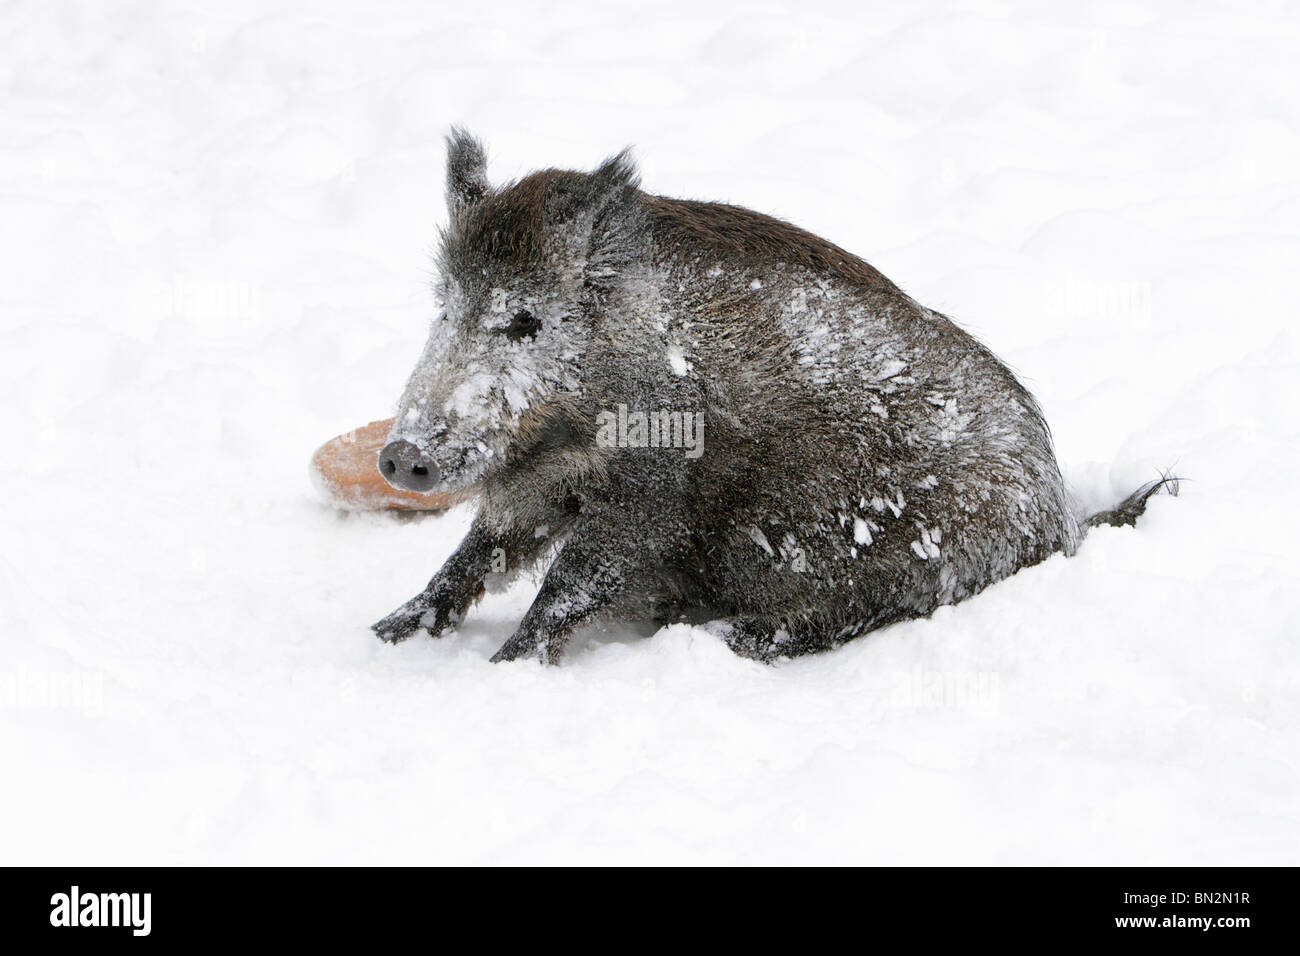 European Wild Pig or Boar (Sus scrofa), sow sitting, covered in snow, after having rolled in snow, Germany - Stock Image